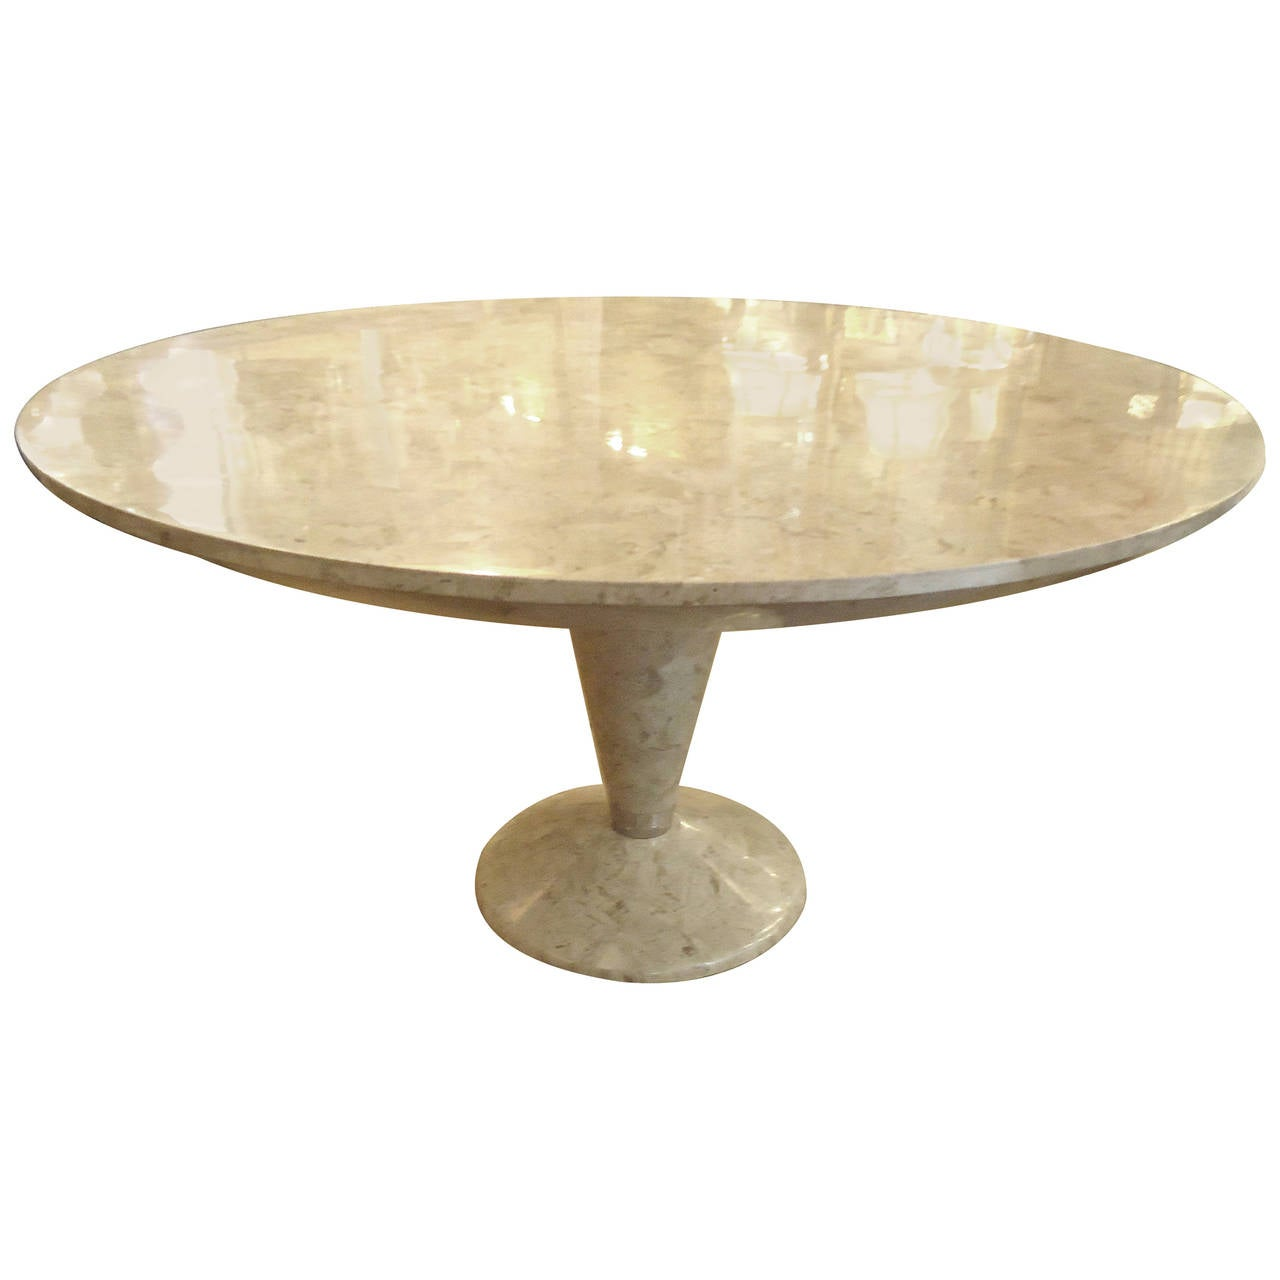 Elegant cream tessellated stone round dining table at 1stdibs for Fancy dining table